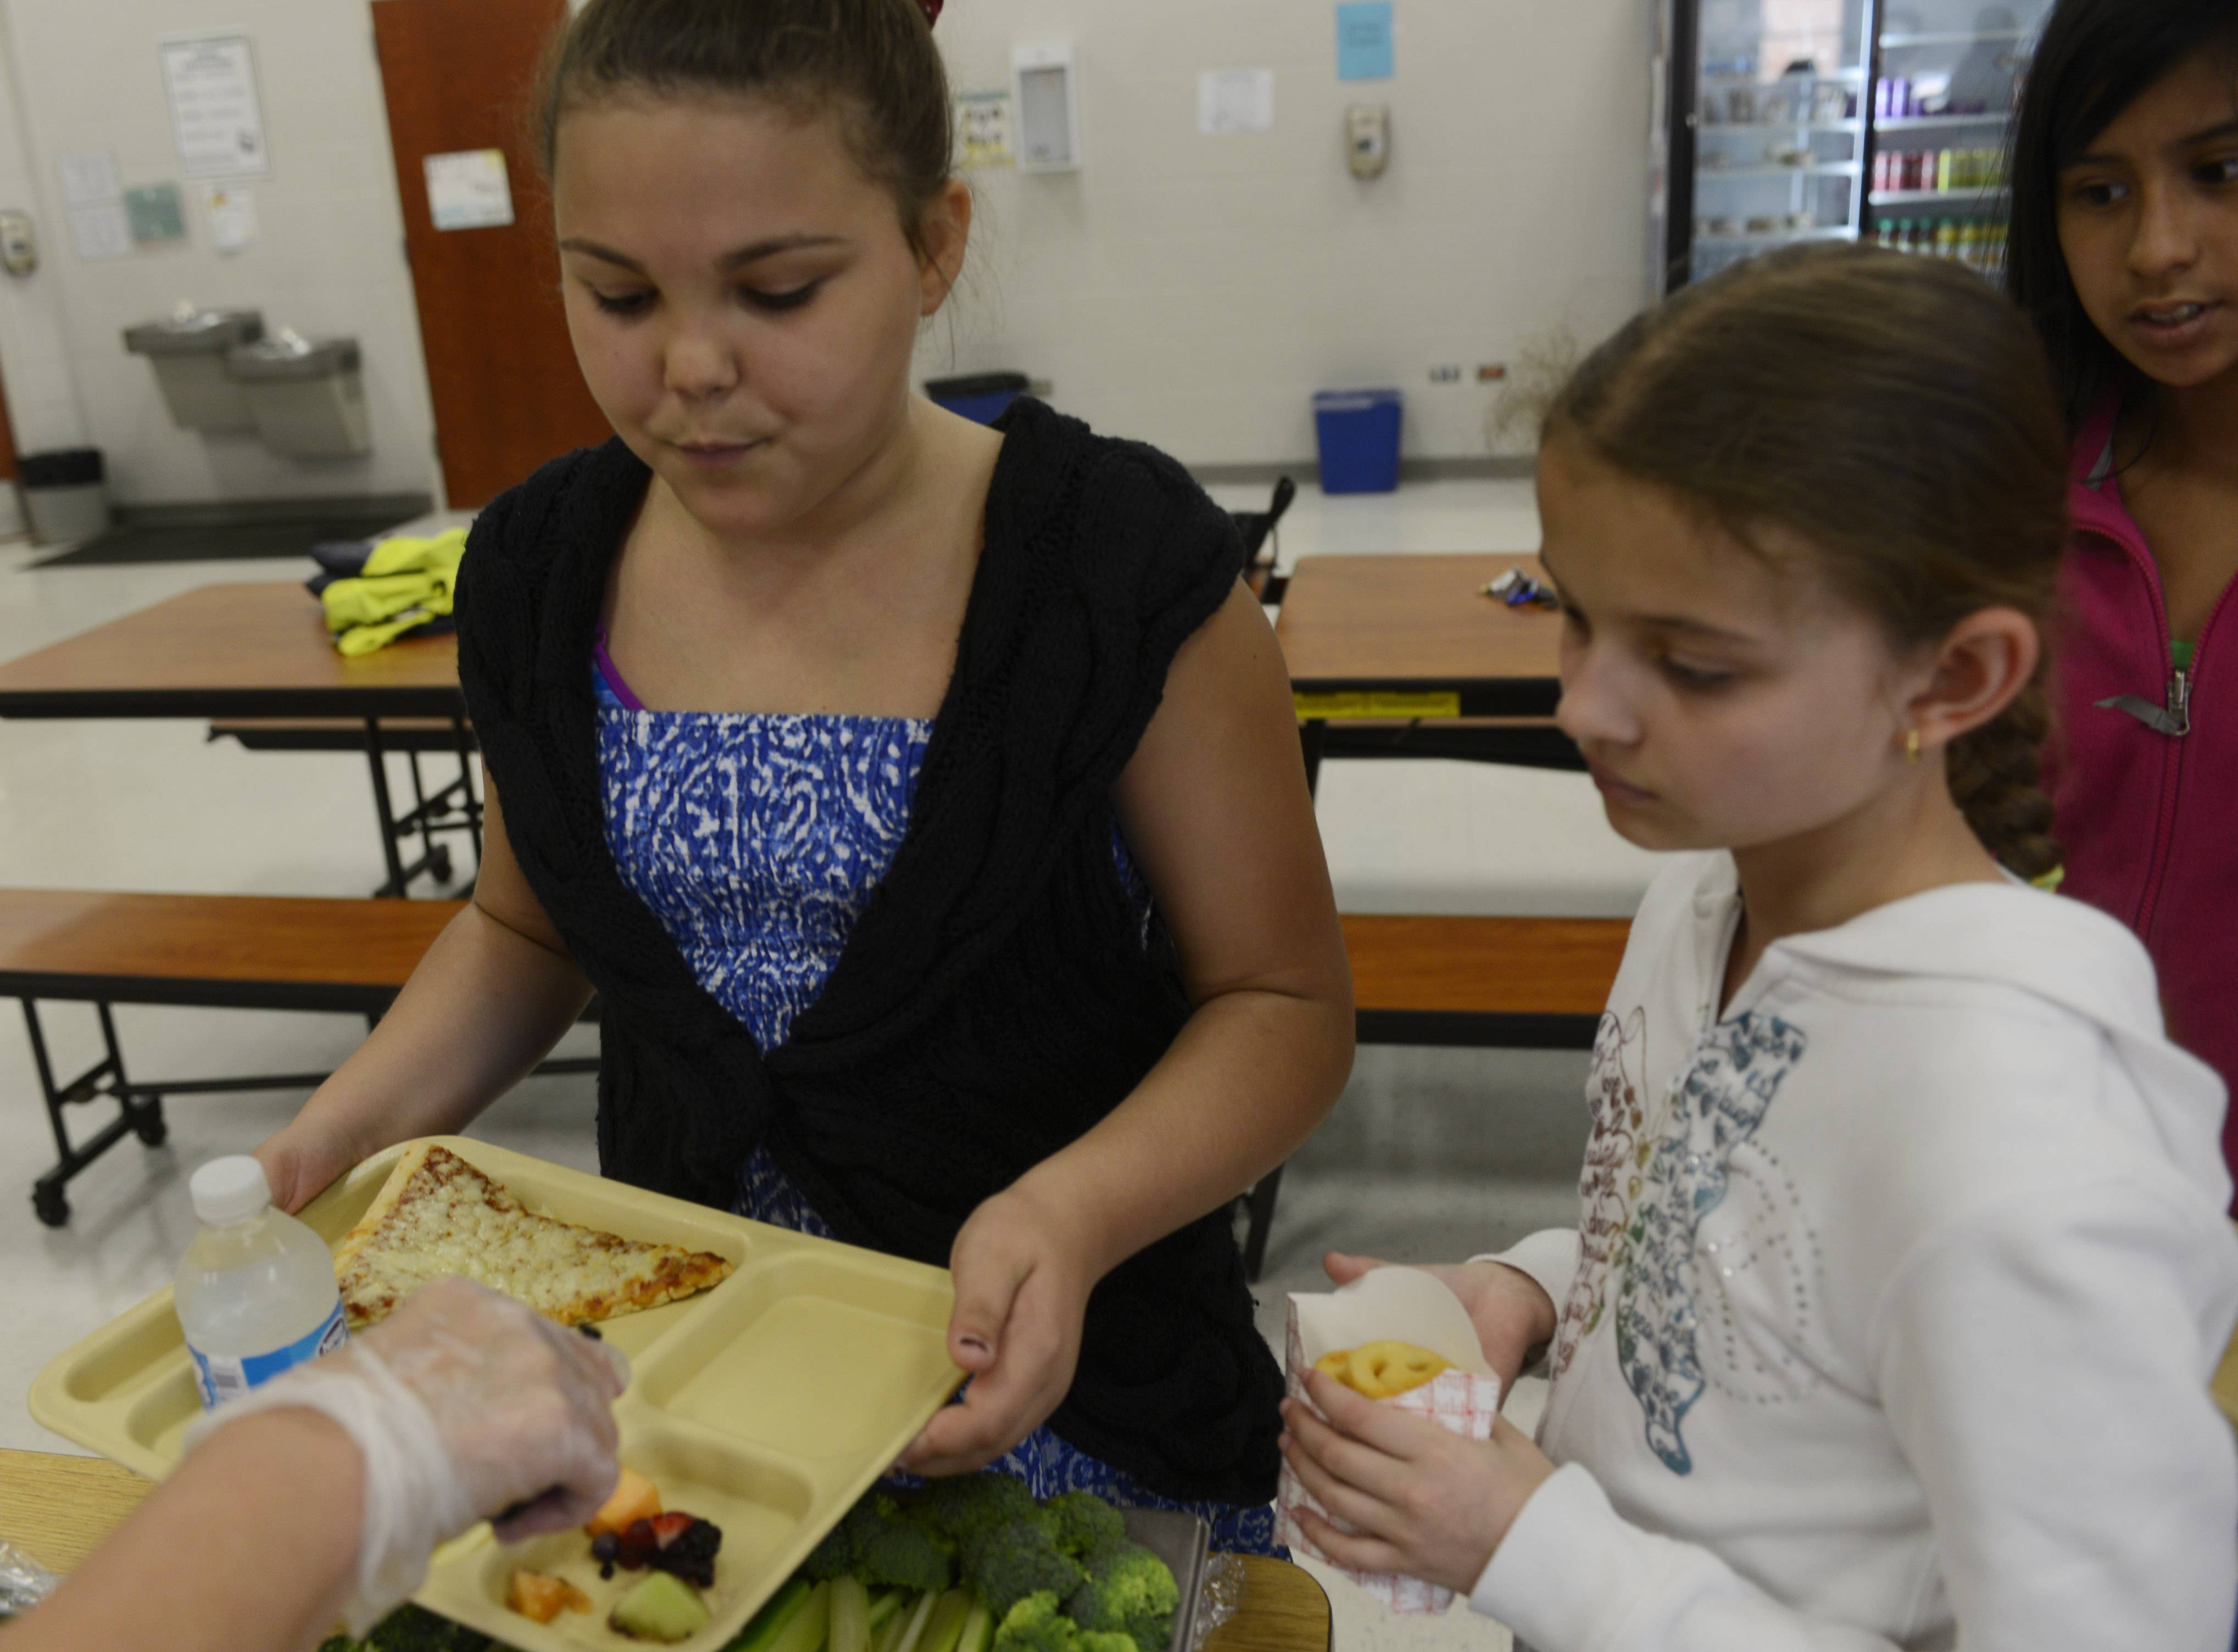 Fifth-grader Georgie Sanchez receives a selection of vegetables she and classmate Alexandra Ulanovski are served in the lunchroom in the spring at Fremont Intermediate School near Mundelein.